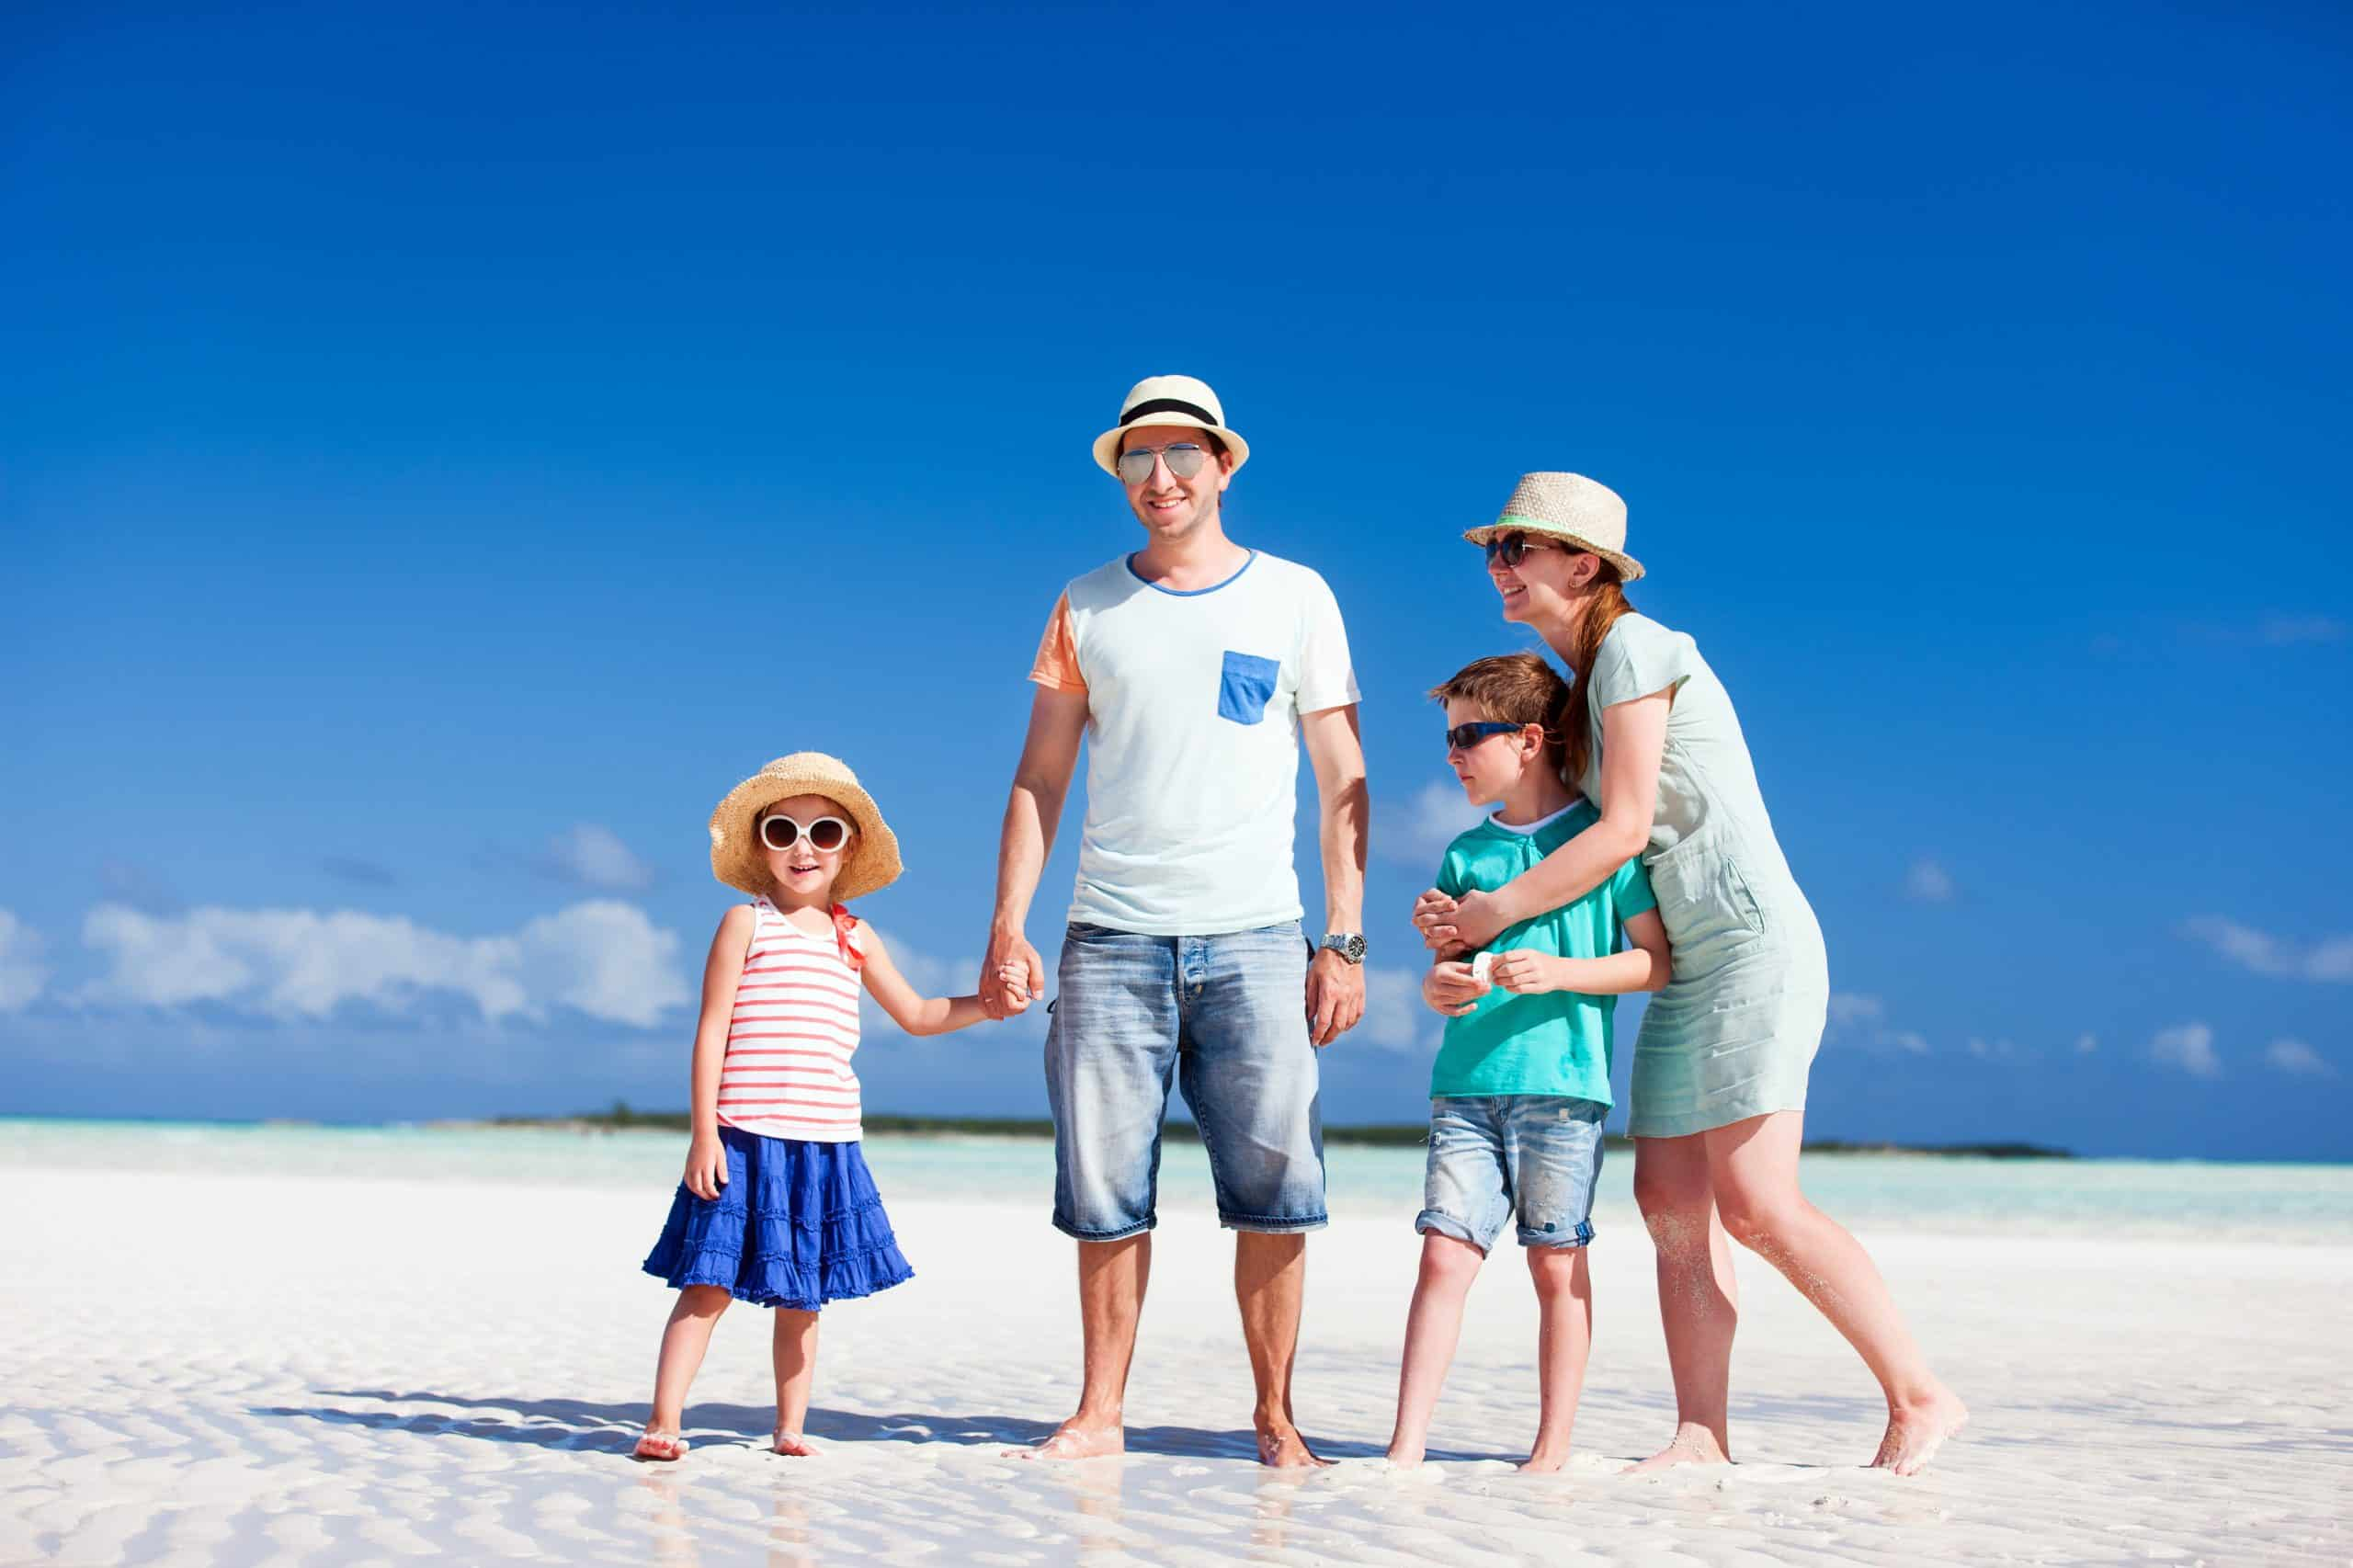 traveling with kids Happy beautiful family on a beach during summer vacation